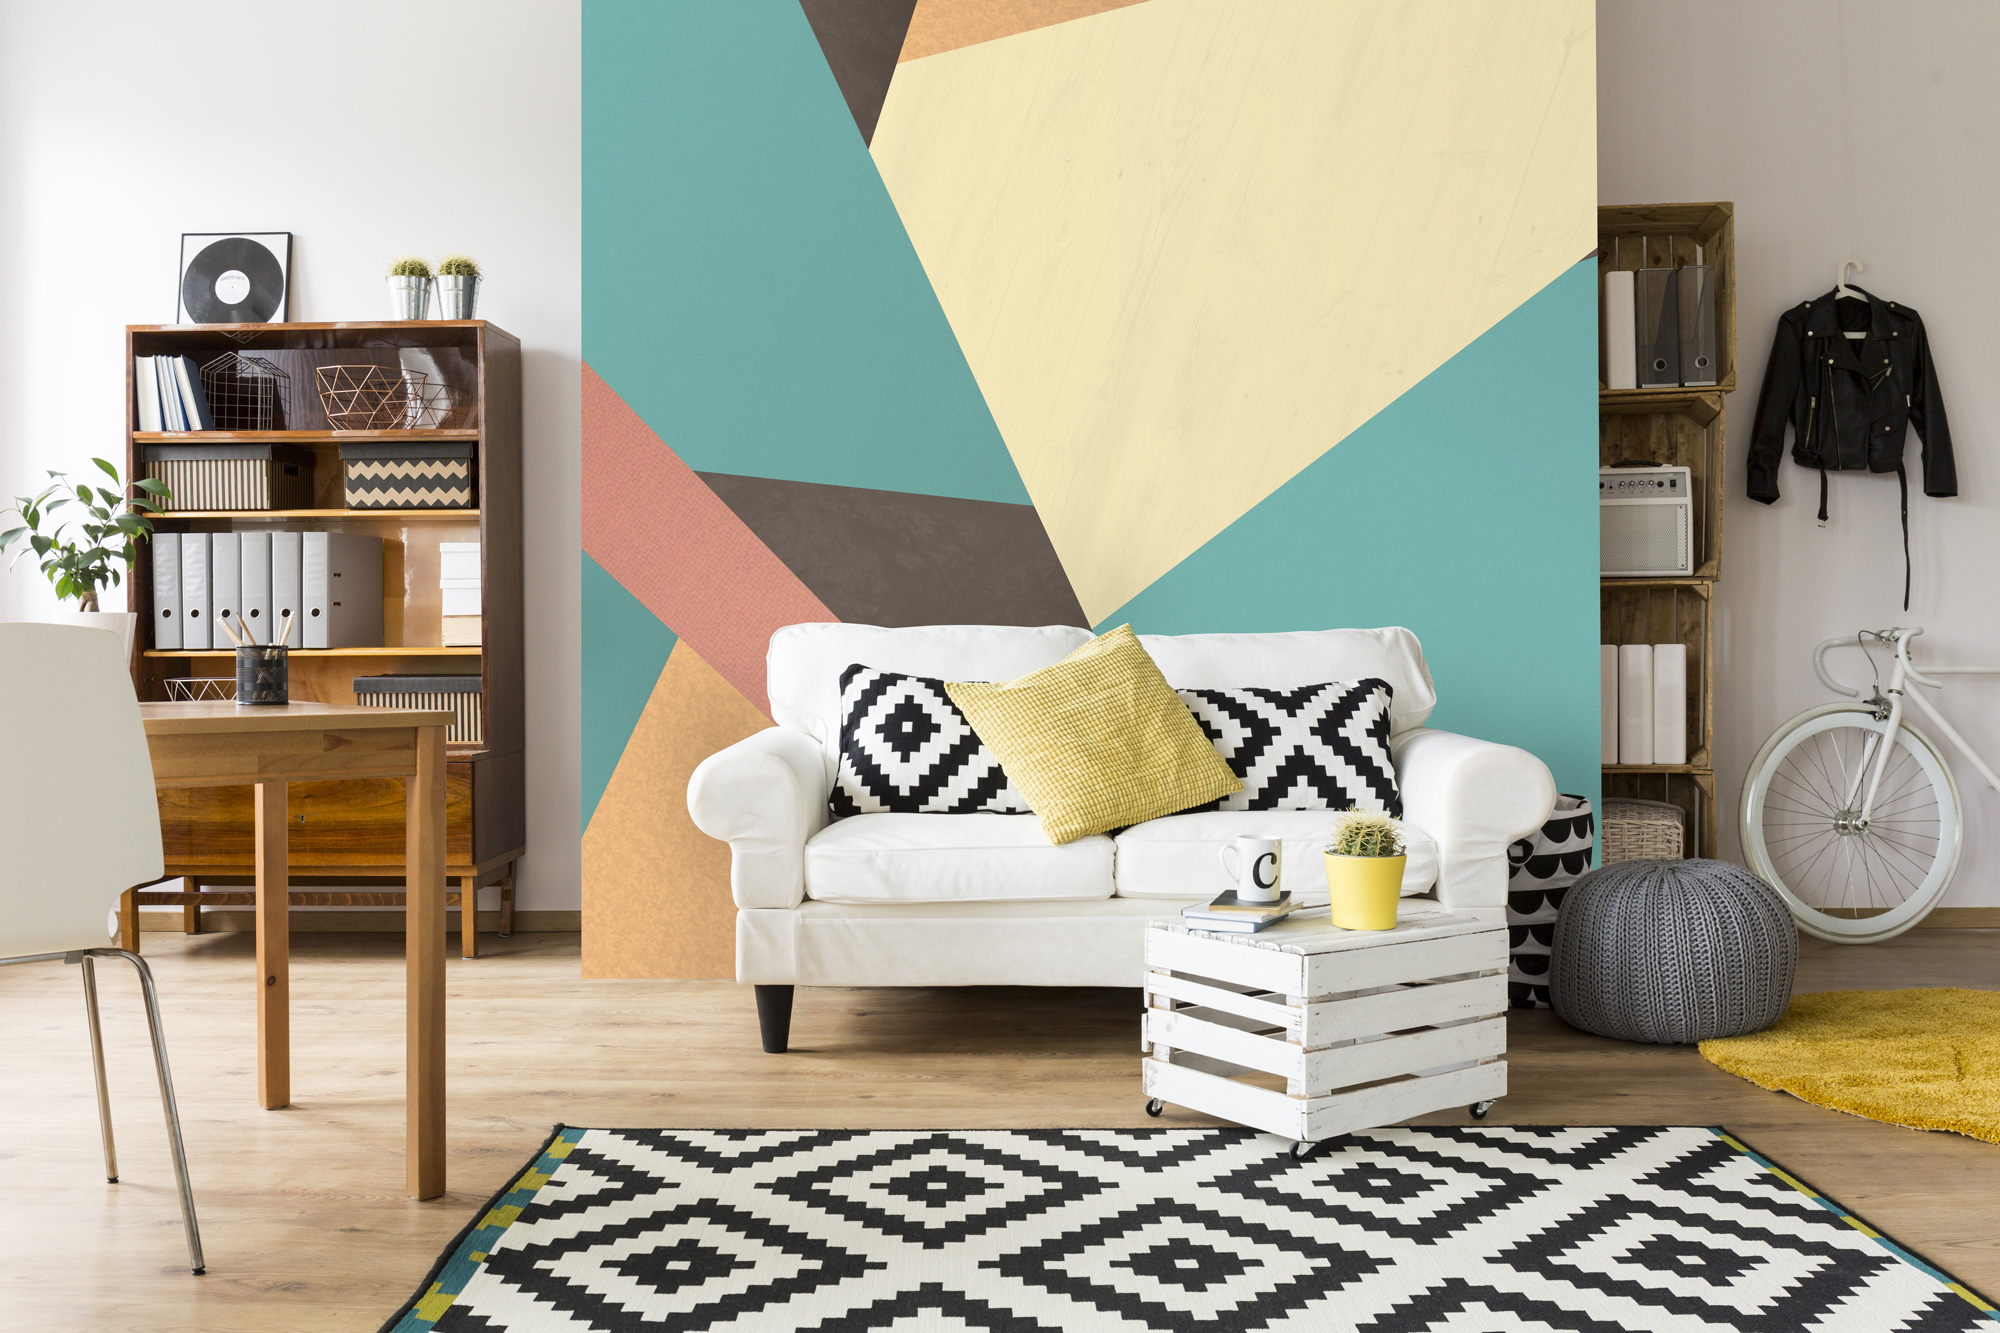 Pastel Geometric Wallpaper from Wallsauce